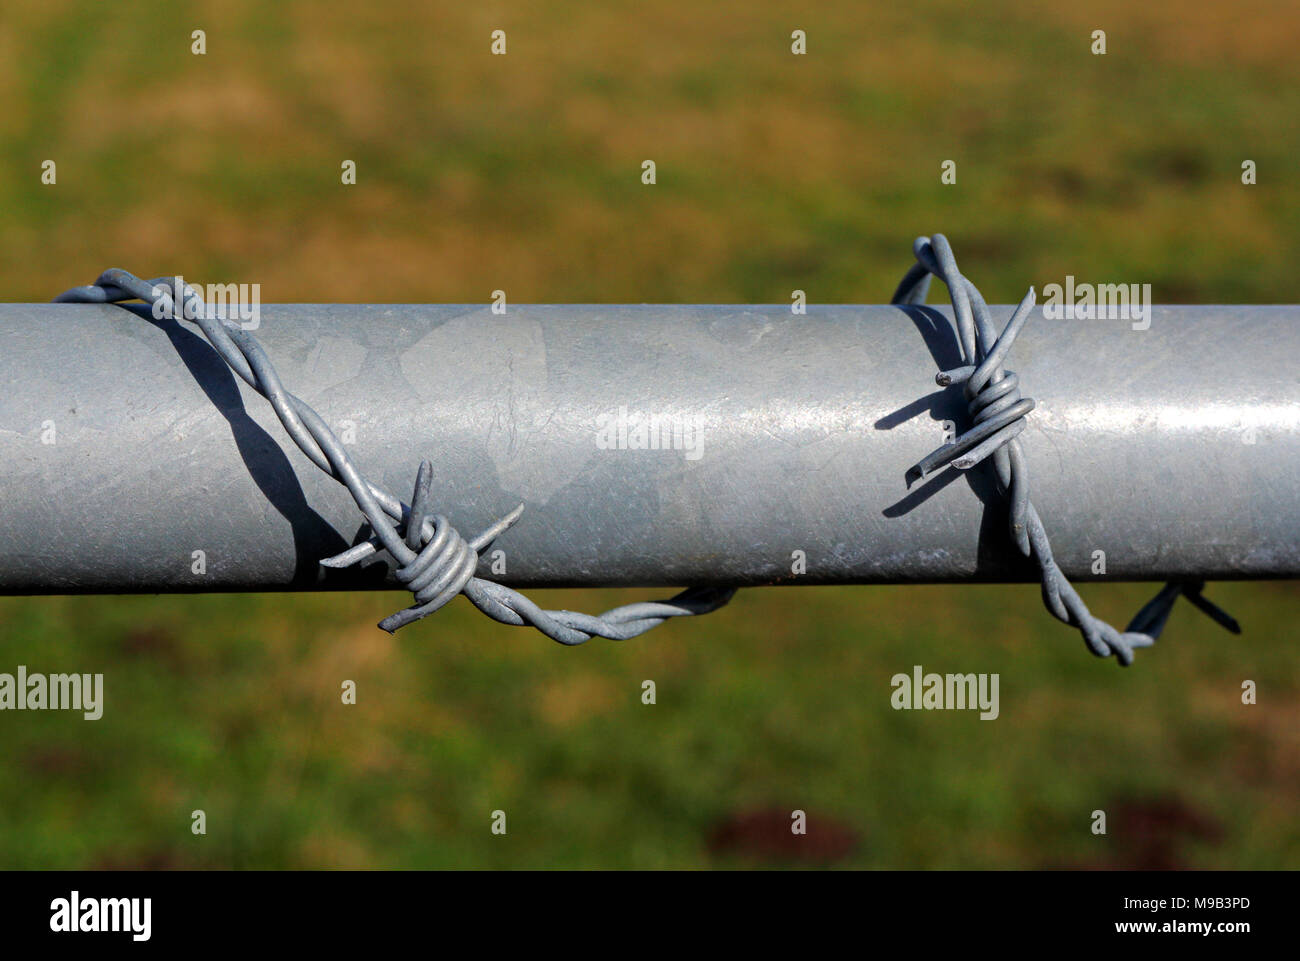 Wrapped Around Wire Stock Photos & Wrapped Around Wire Stock Images ...